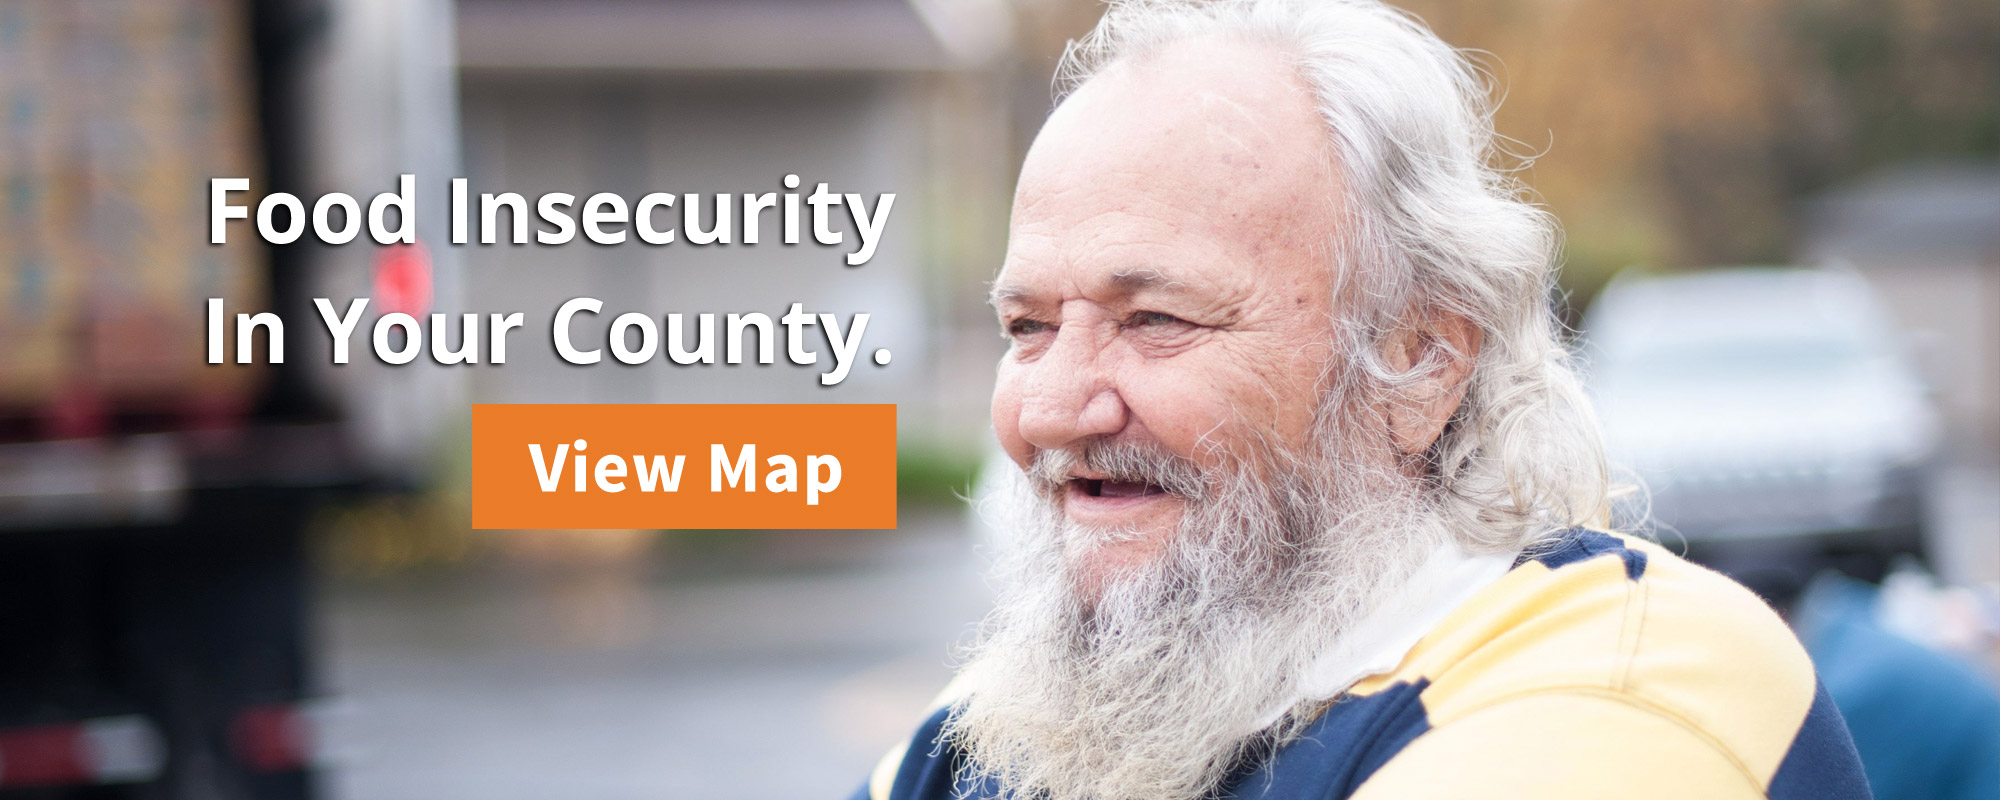 Food Insecurity In Your County